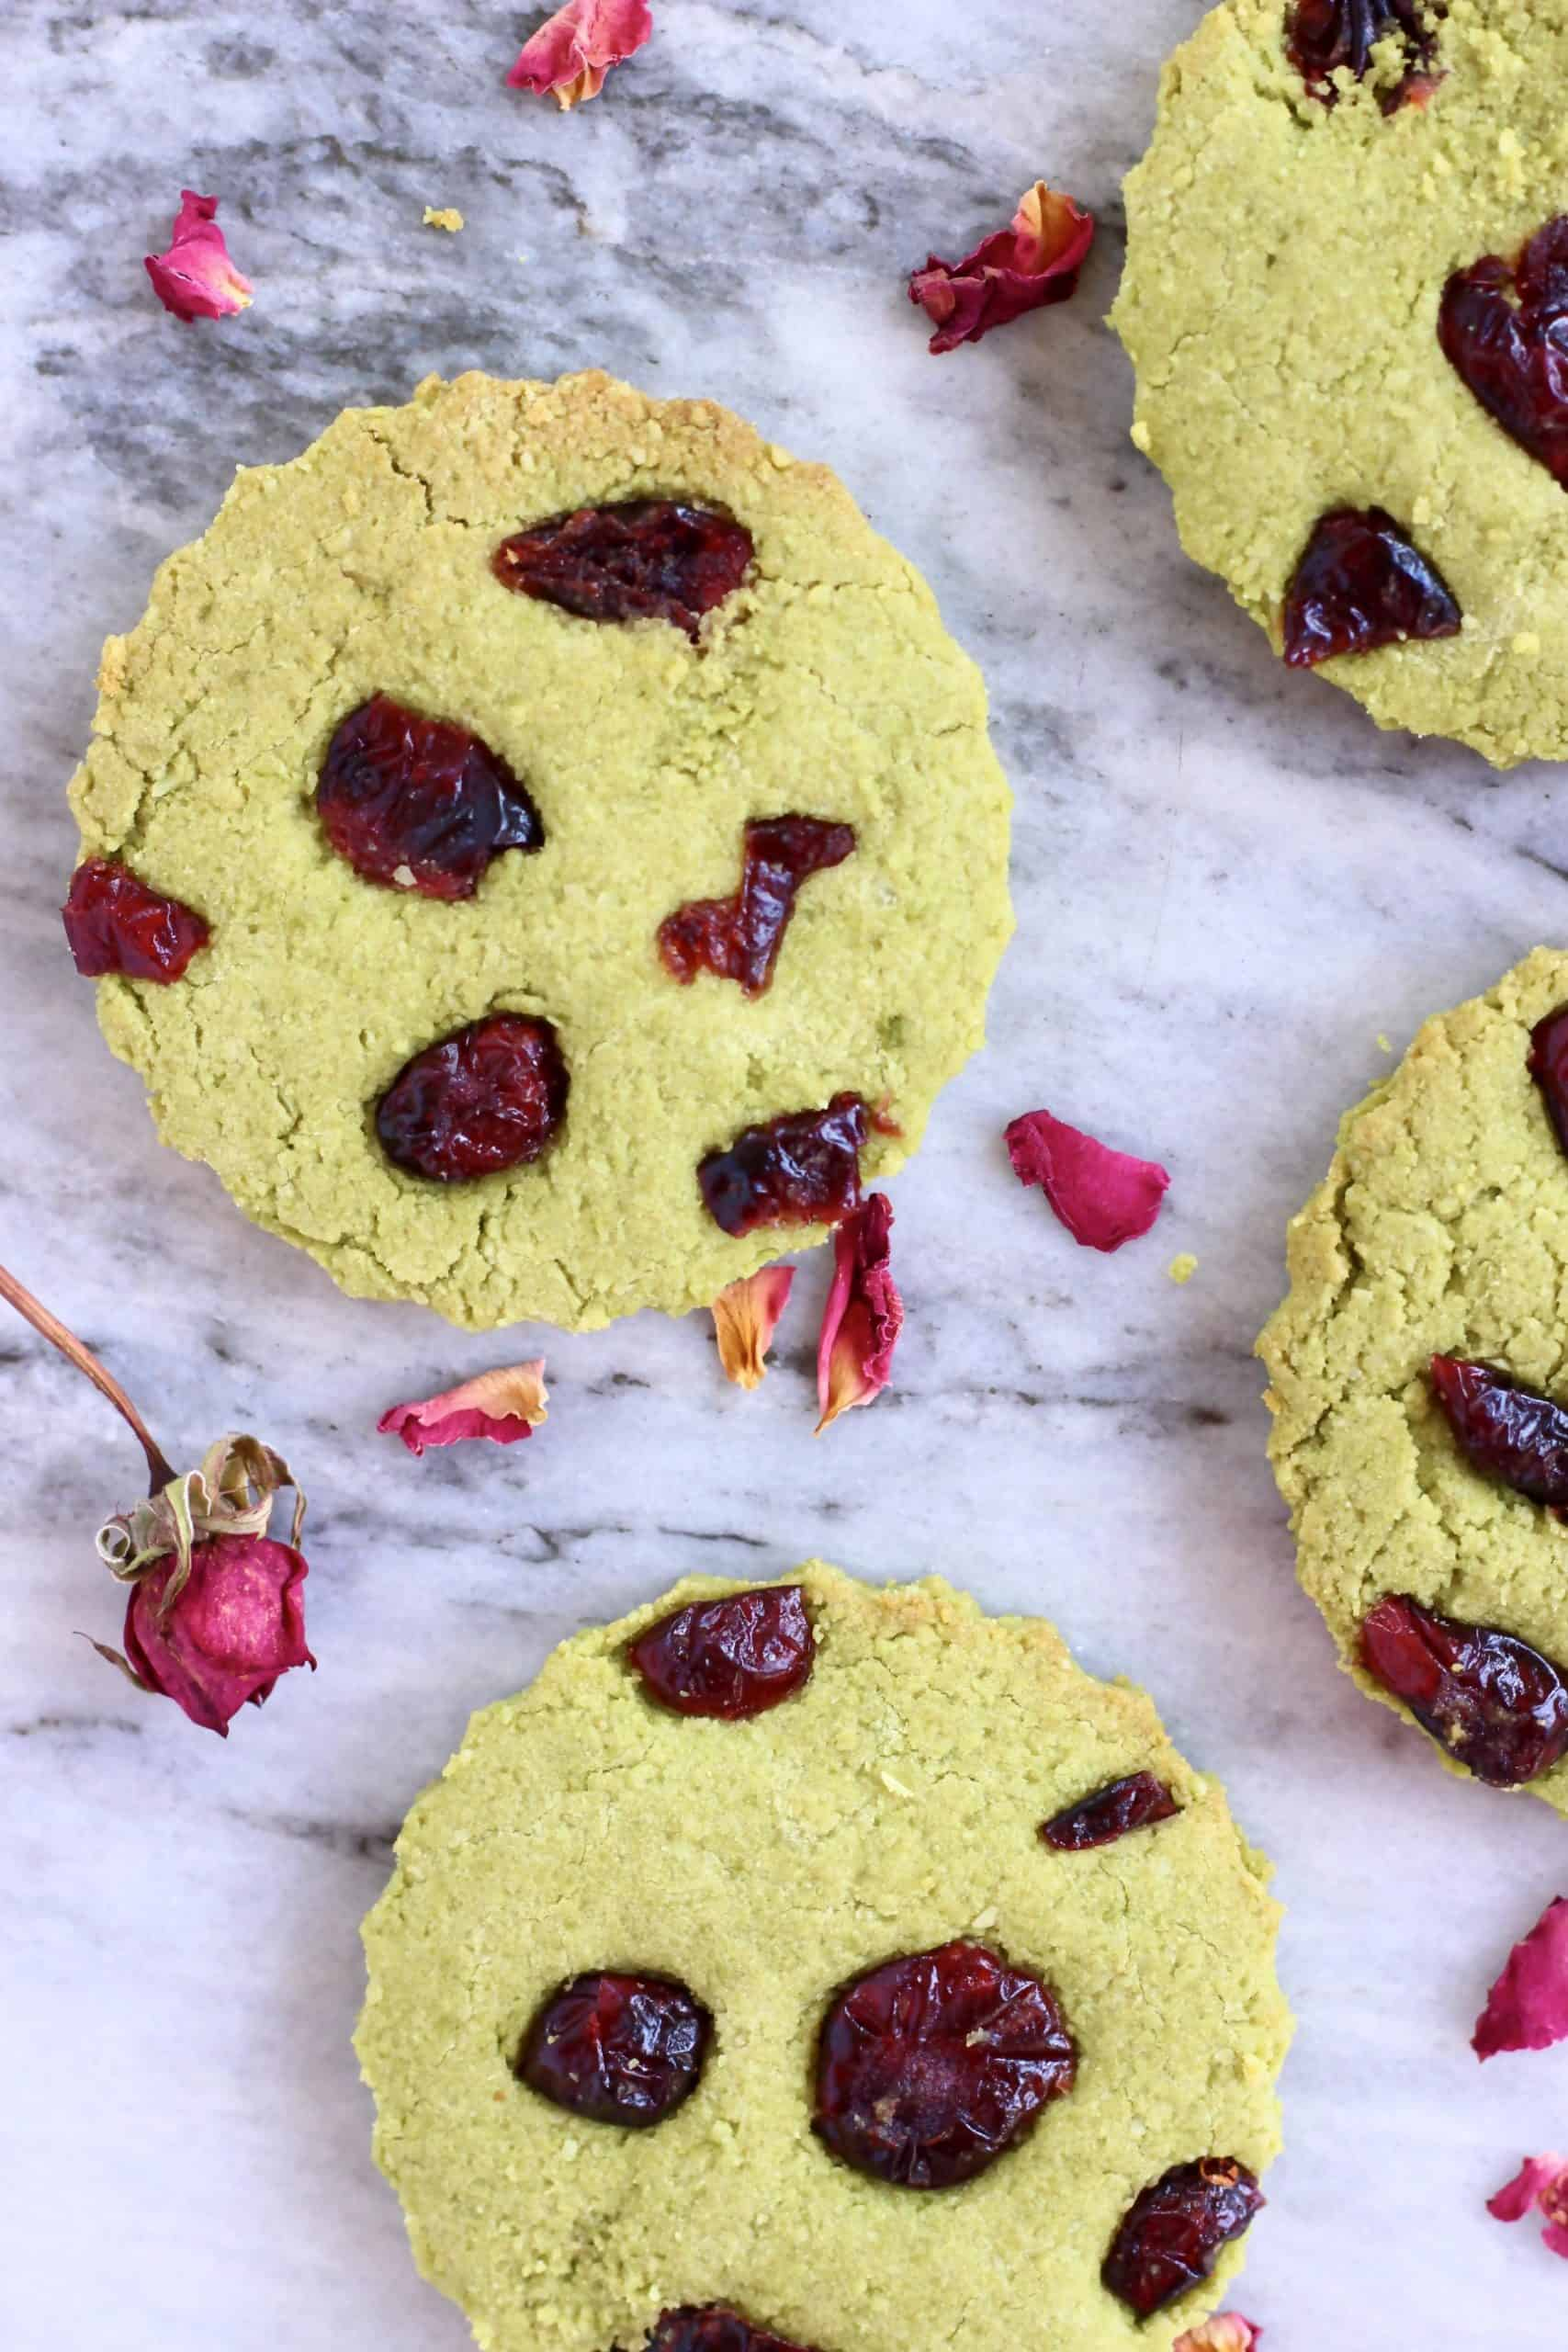 Four vegan matcha shortbread cookies with dried cranberries on a marble background